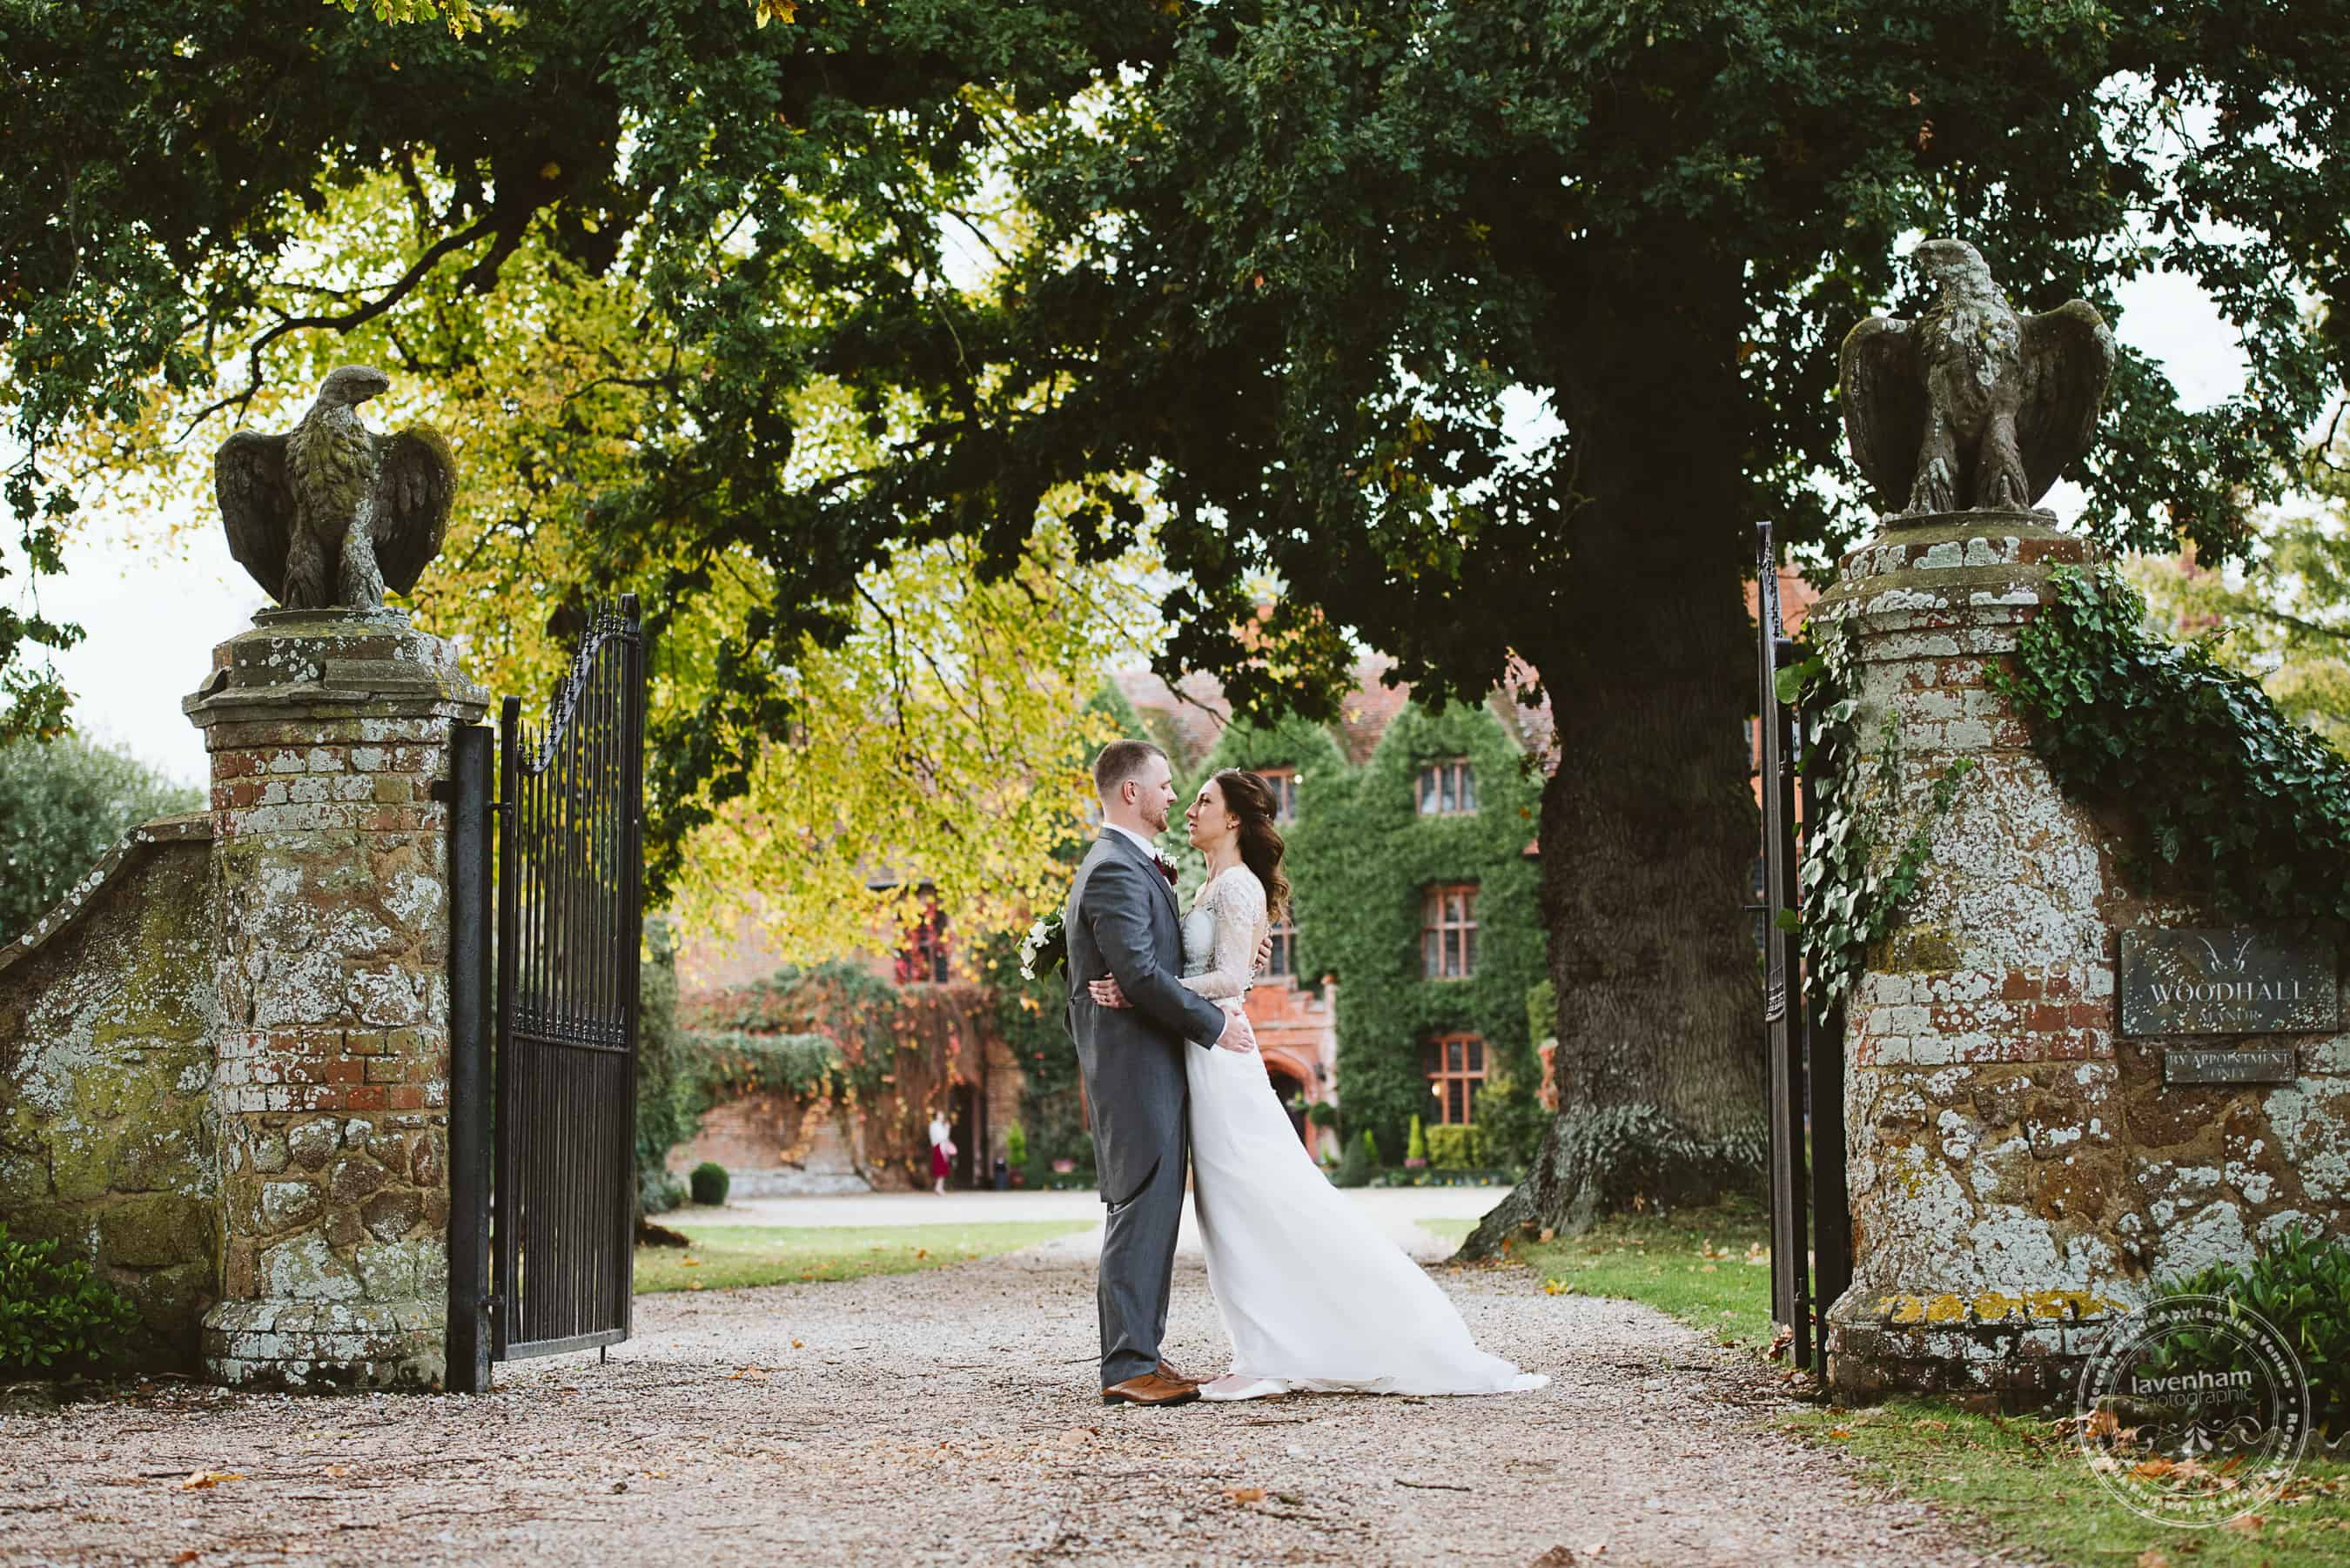 041118 Woodhall Manor Wedding Photography by Lavenham Photographic 097